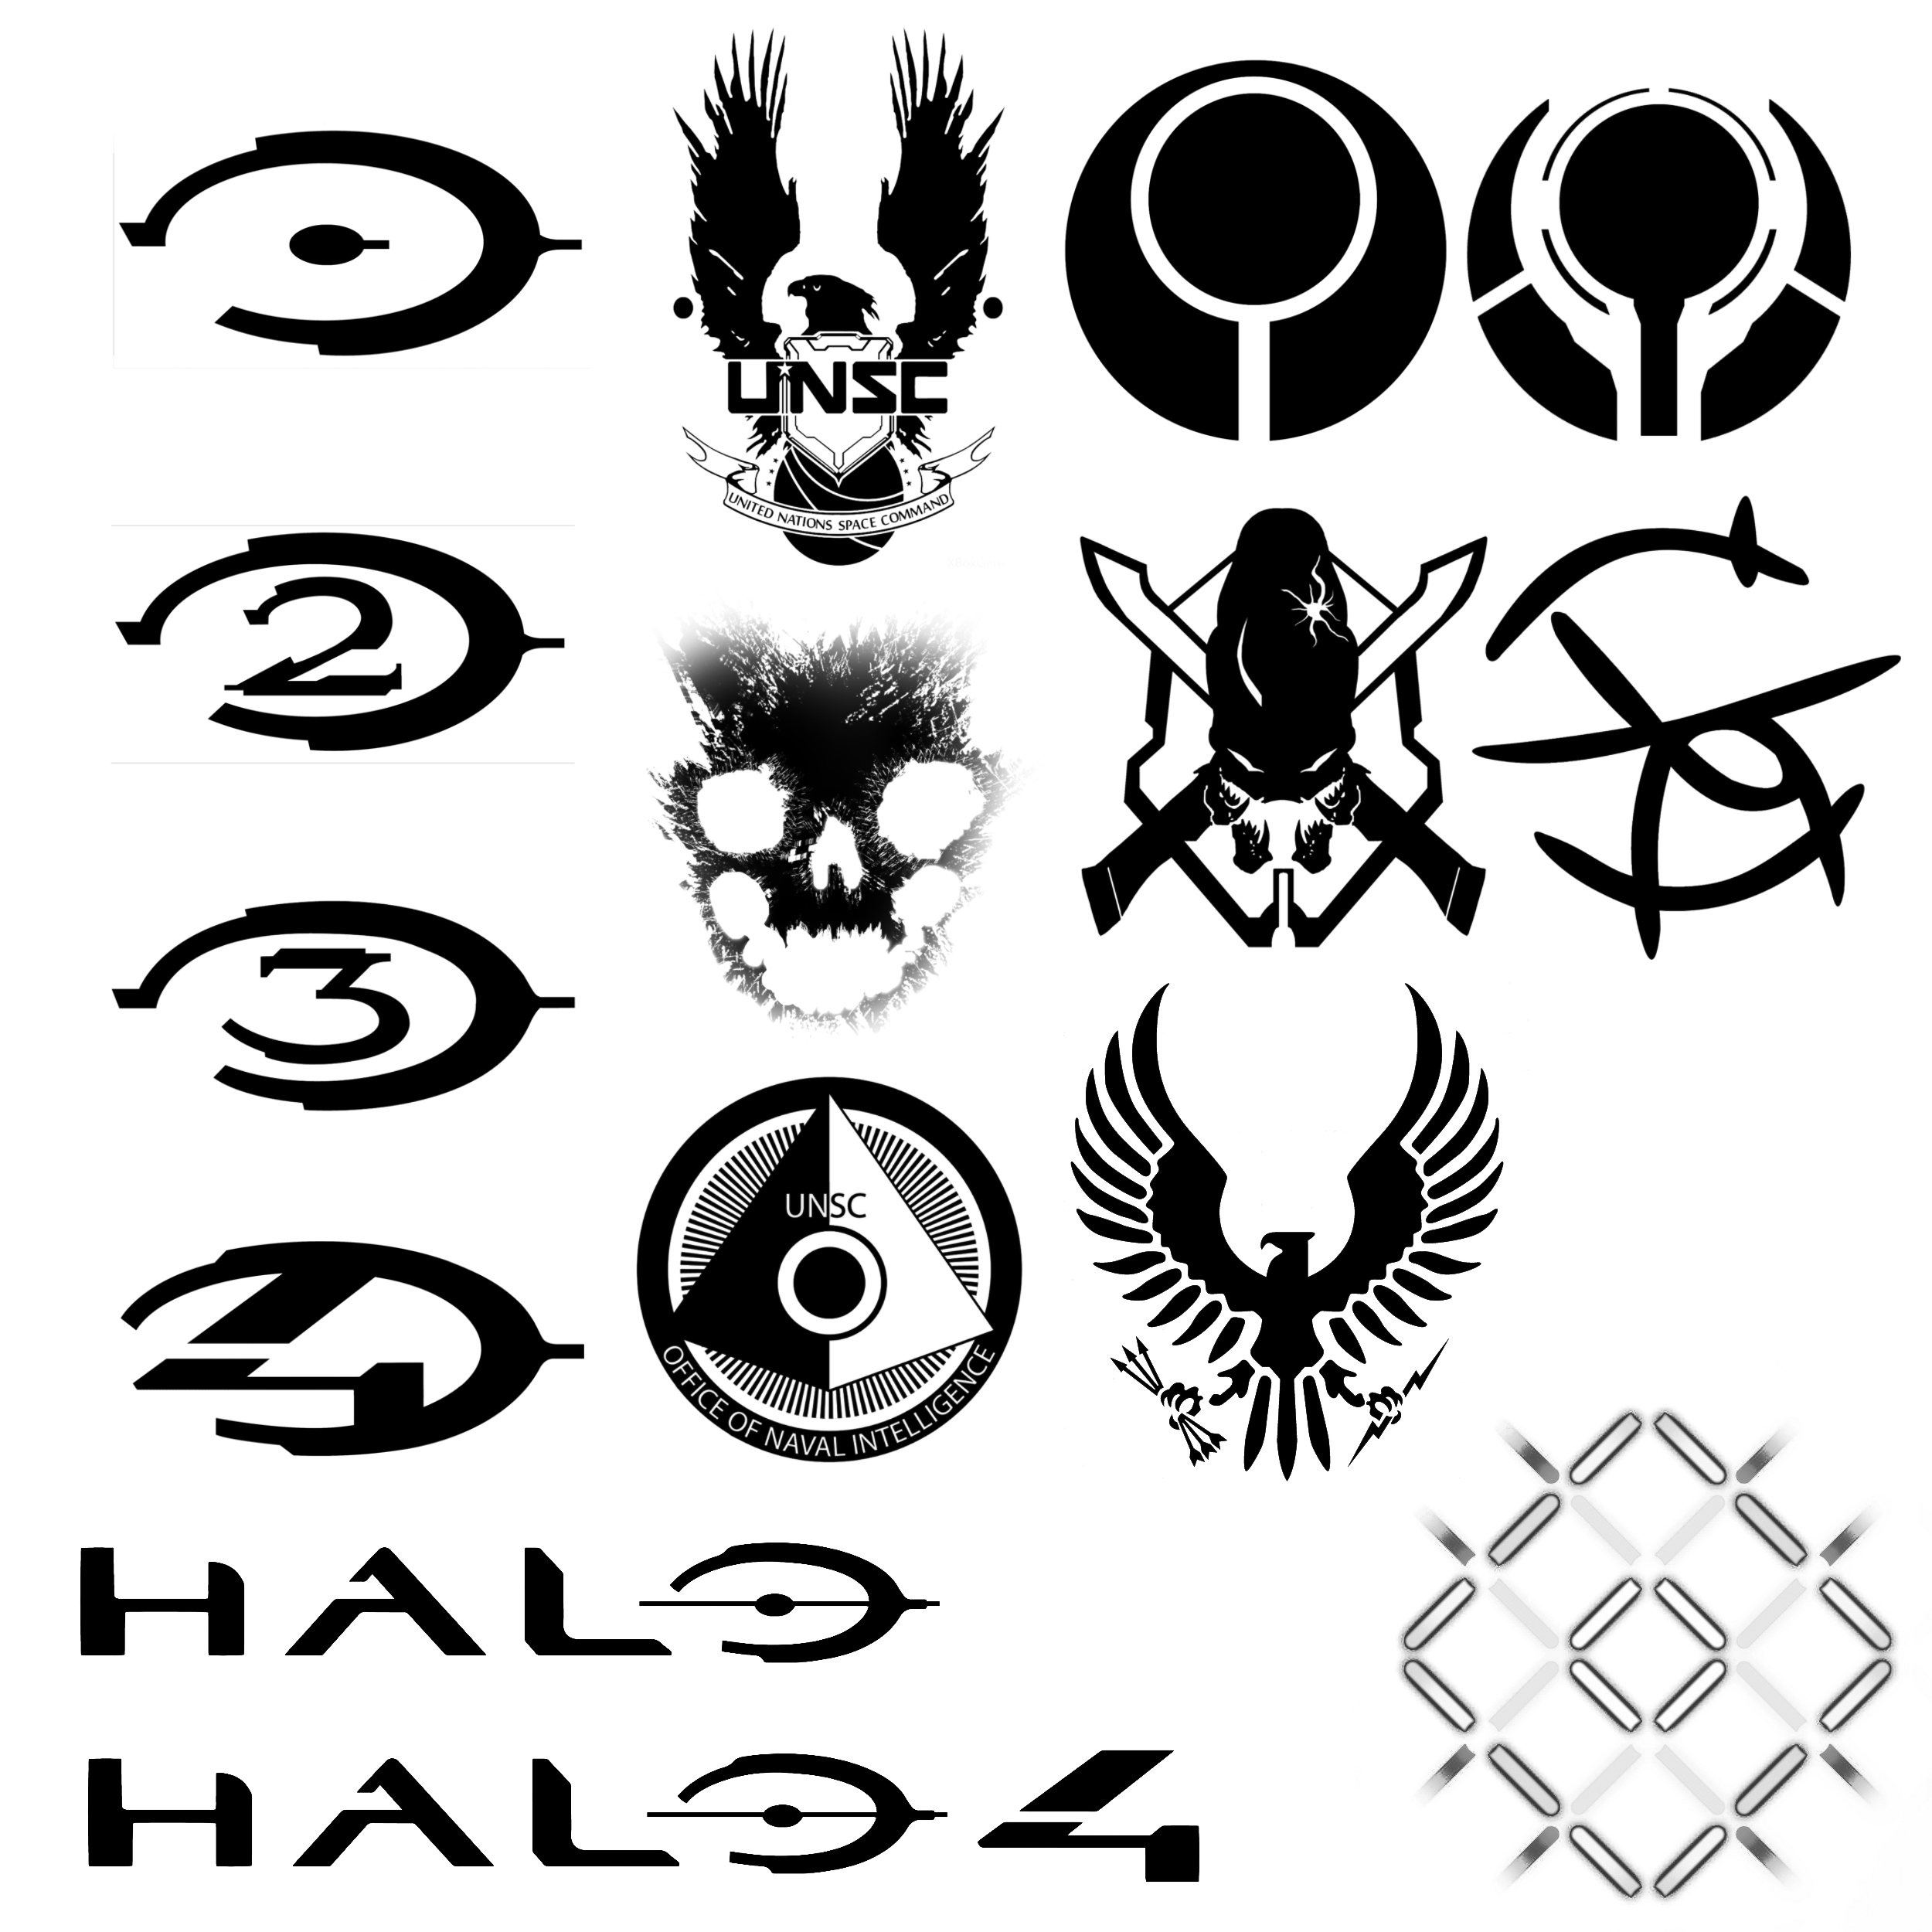 15 Hi Def Halo Themed Brushes By Nick004